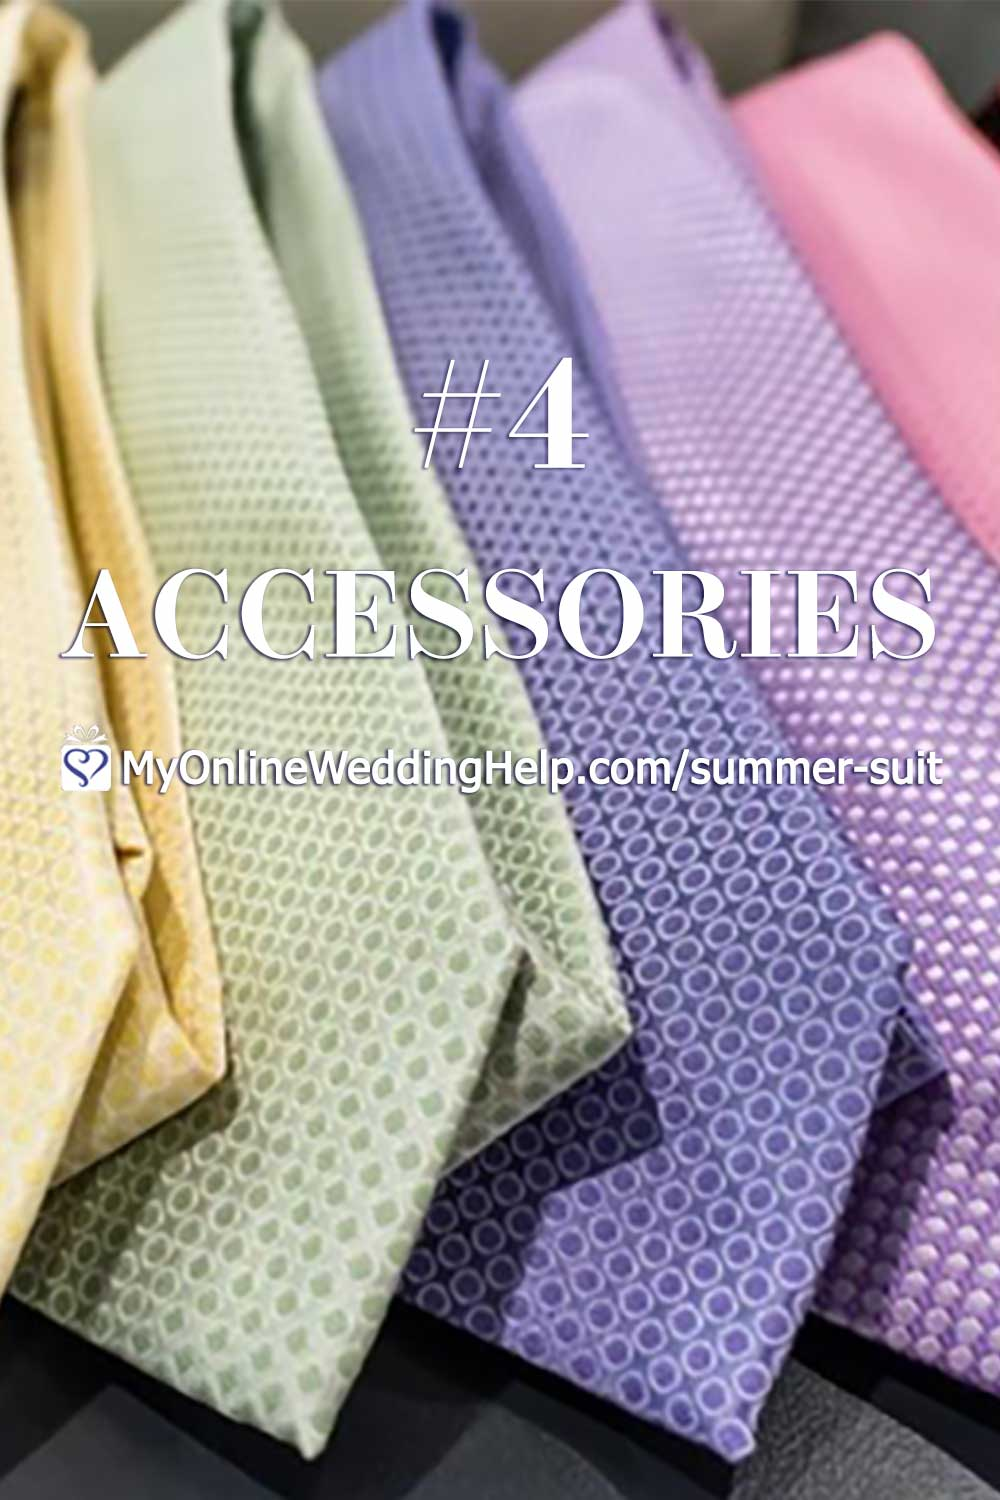 Ideas for putting together a classy men's summer wedding suit that's both formal and comfortable. These five ideas will have your guy outfitted in attire that's both appropriate and fresh. Whether he's a guest, groomsman, or groom. The fourth tip is choose the right accessories. Next, ... read them all on the My Online Wedding Help Blog. #WeddingOutfits #SummerWedding #Groomswear #Groomsmen #SummerSuit #FormalAttire